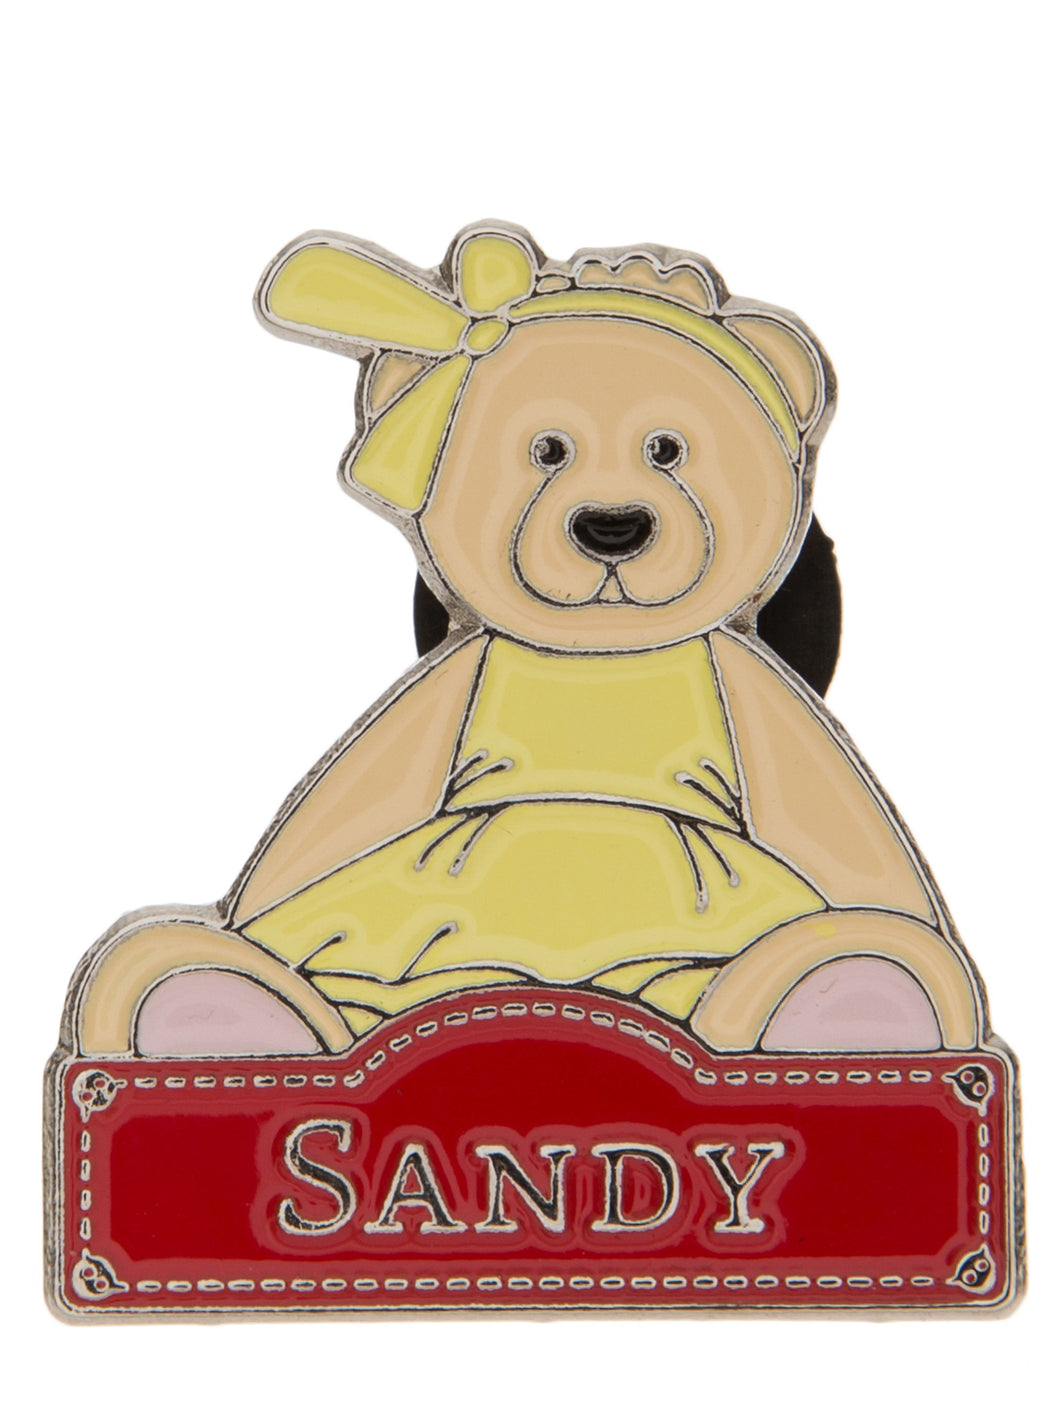 Pin badge charlie bears Australia